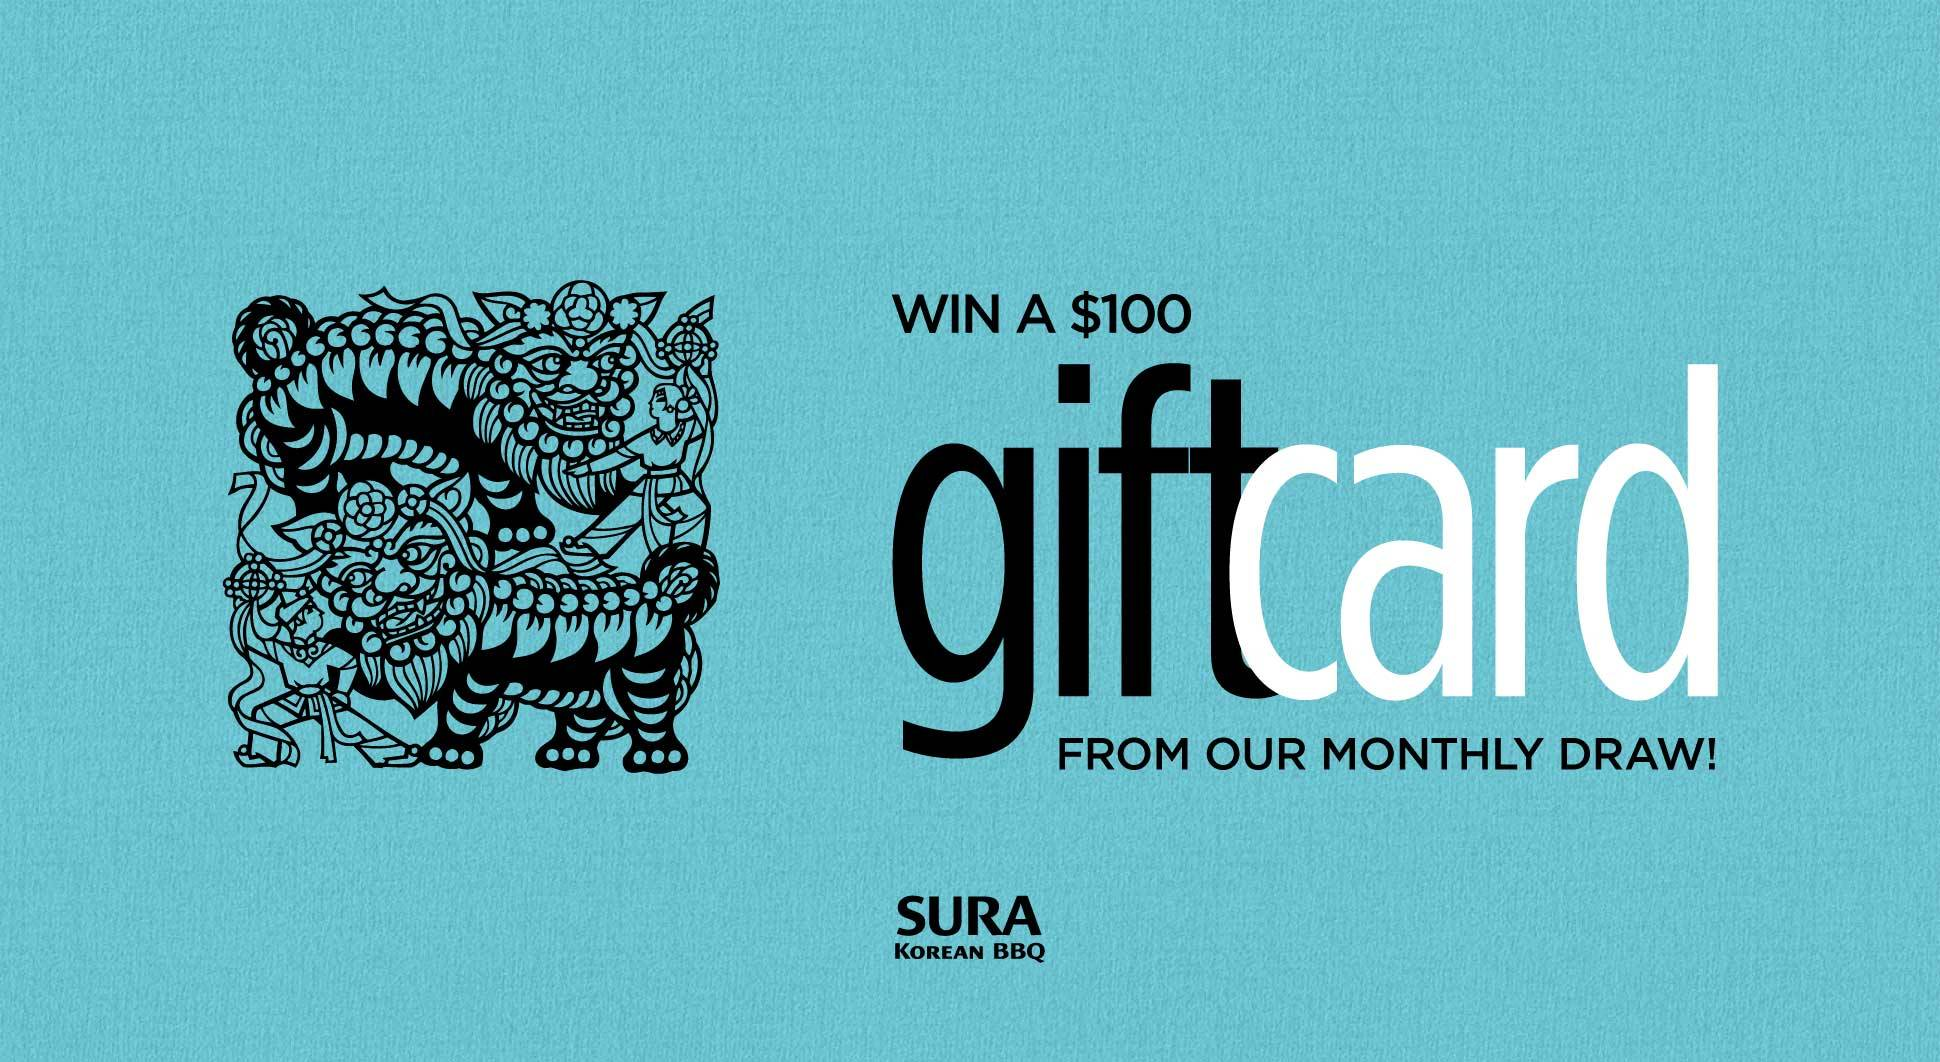 Win a $100 gift card from our monthly draw!